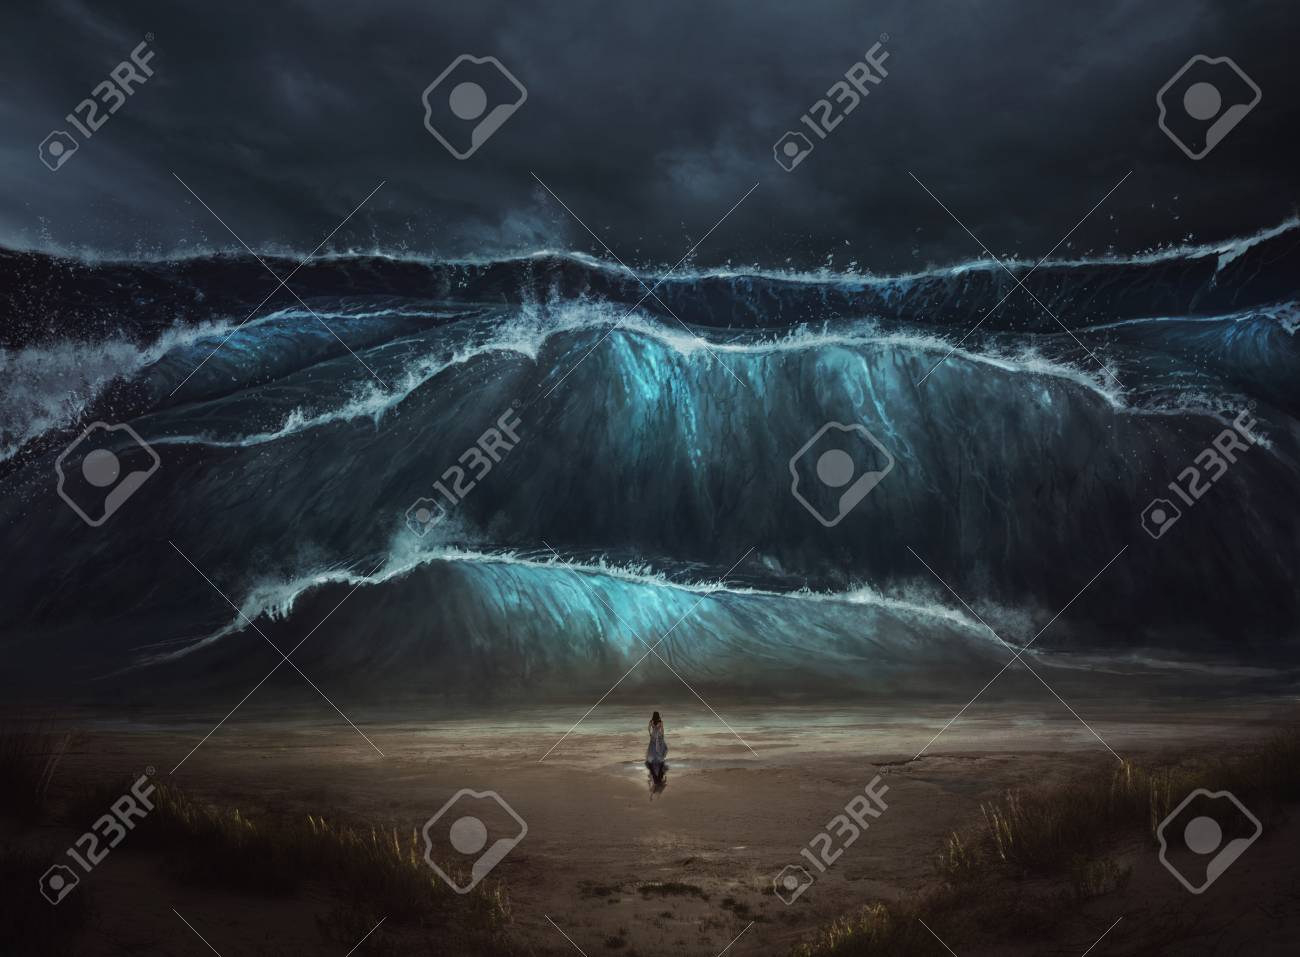 A woman stands alone before a large tidal wave coming on to the beach. - 109768846